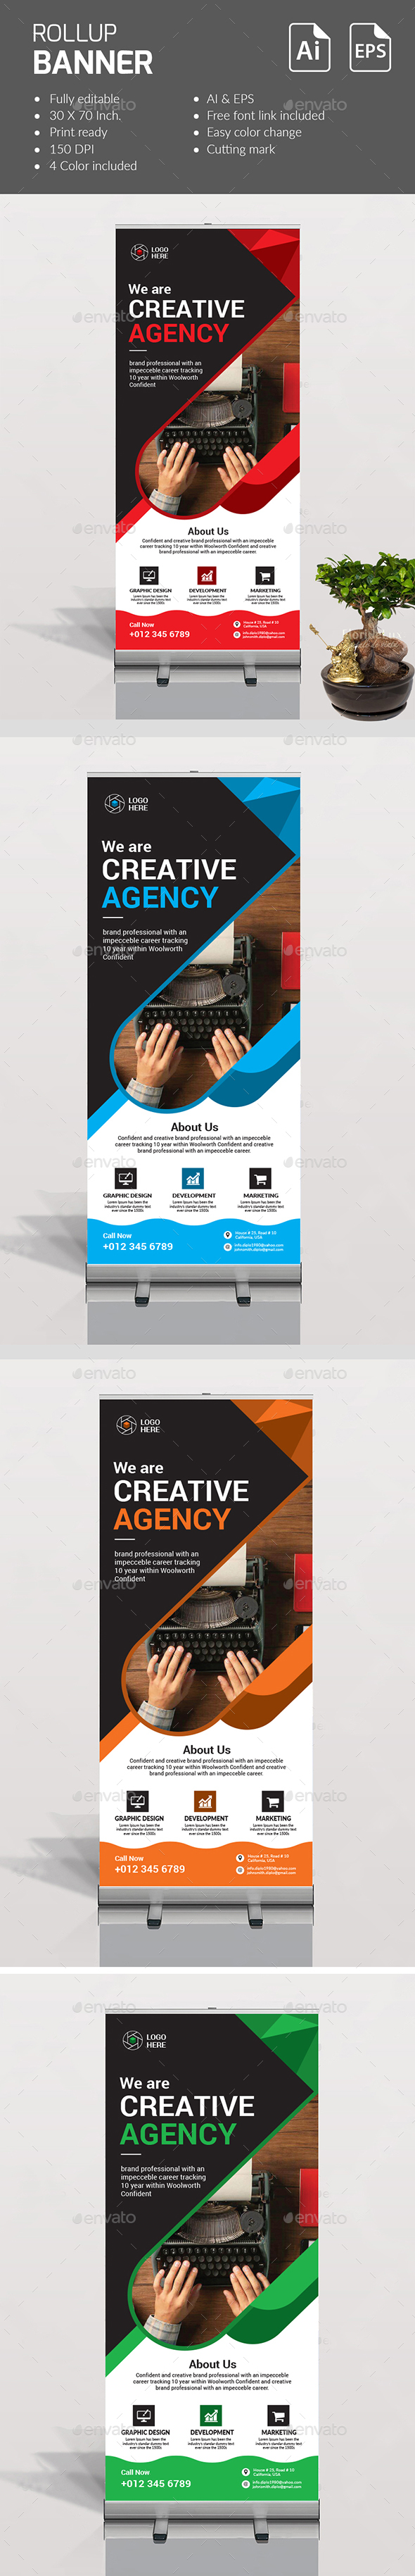 Roll up Banner - Print Templates